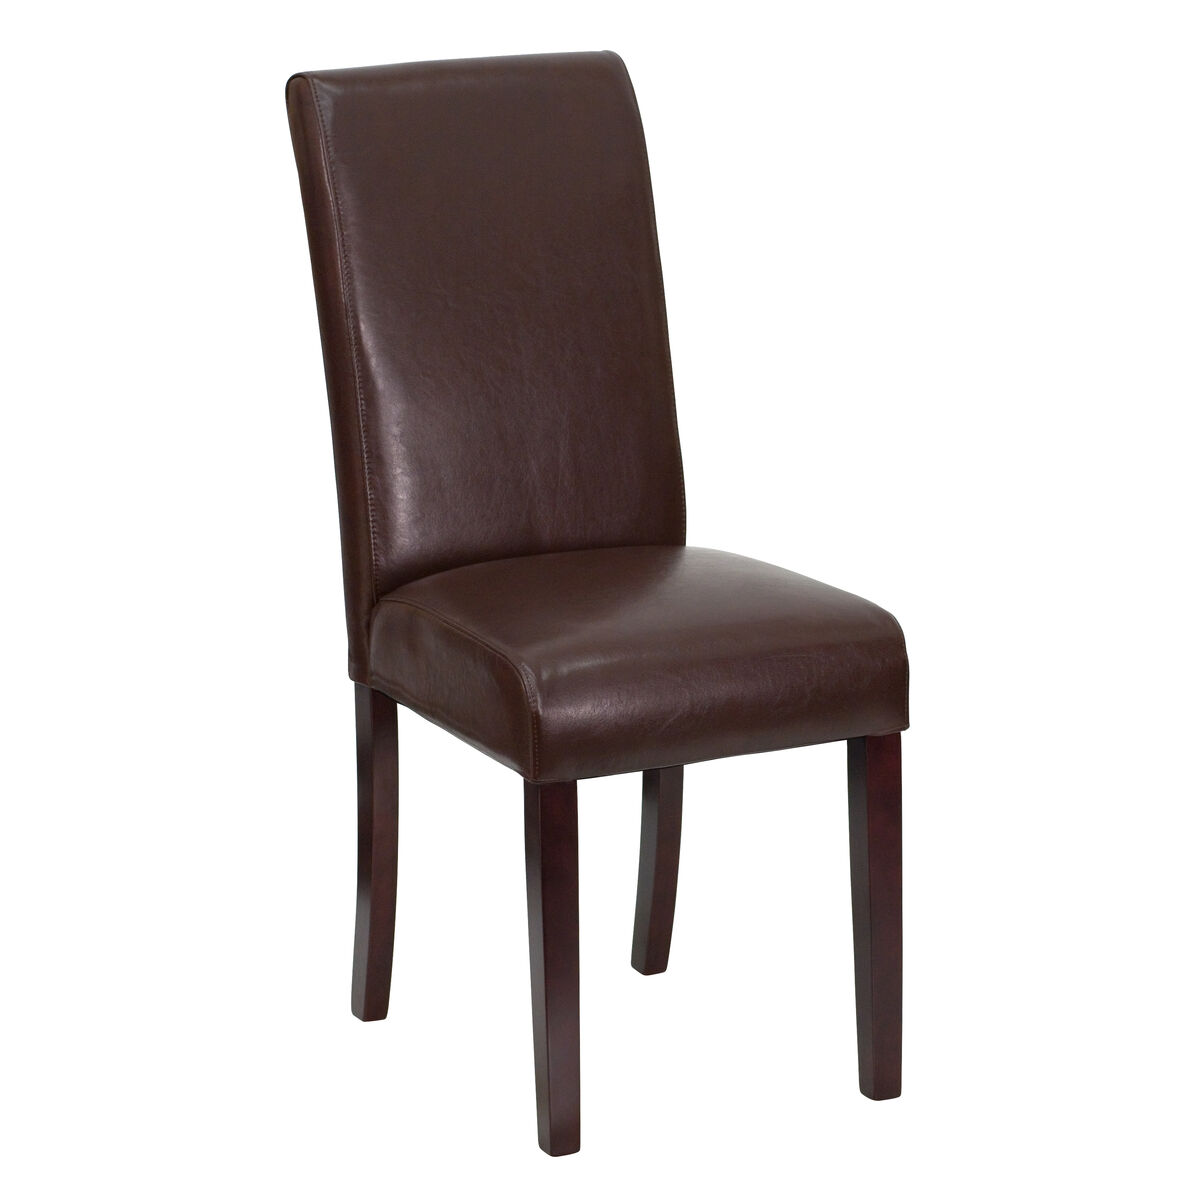 Brown Parsons Chair Bt 350 Brn Lea 008 Gg